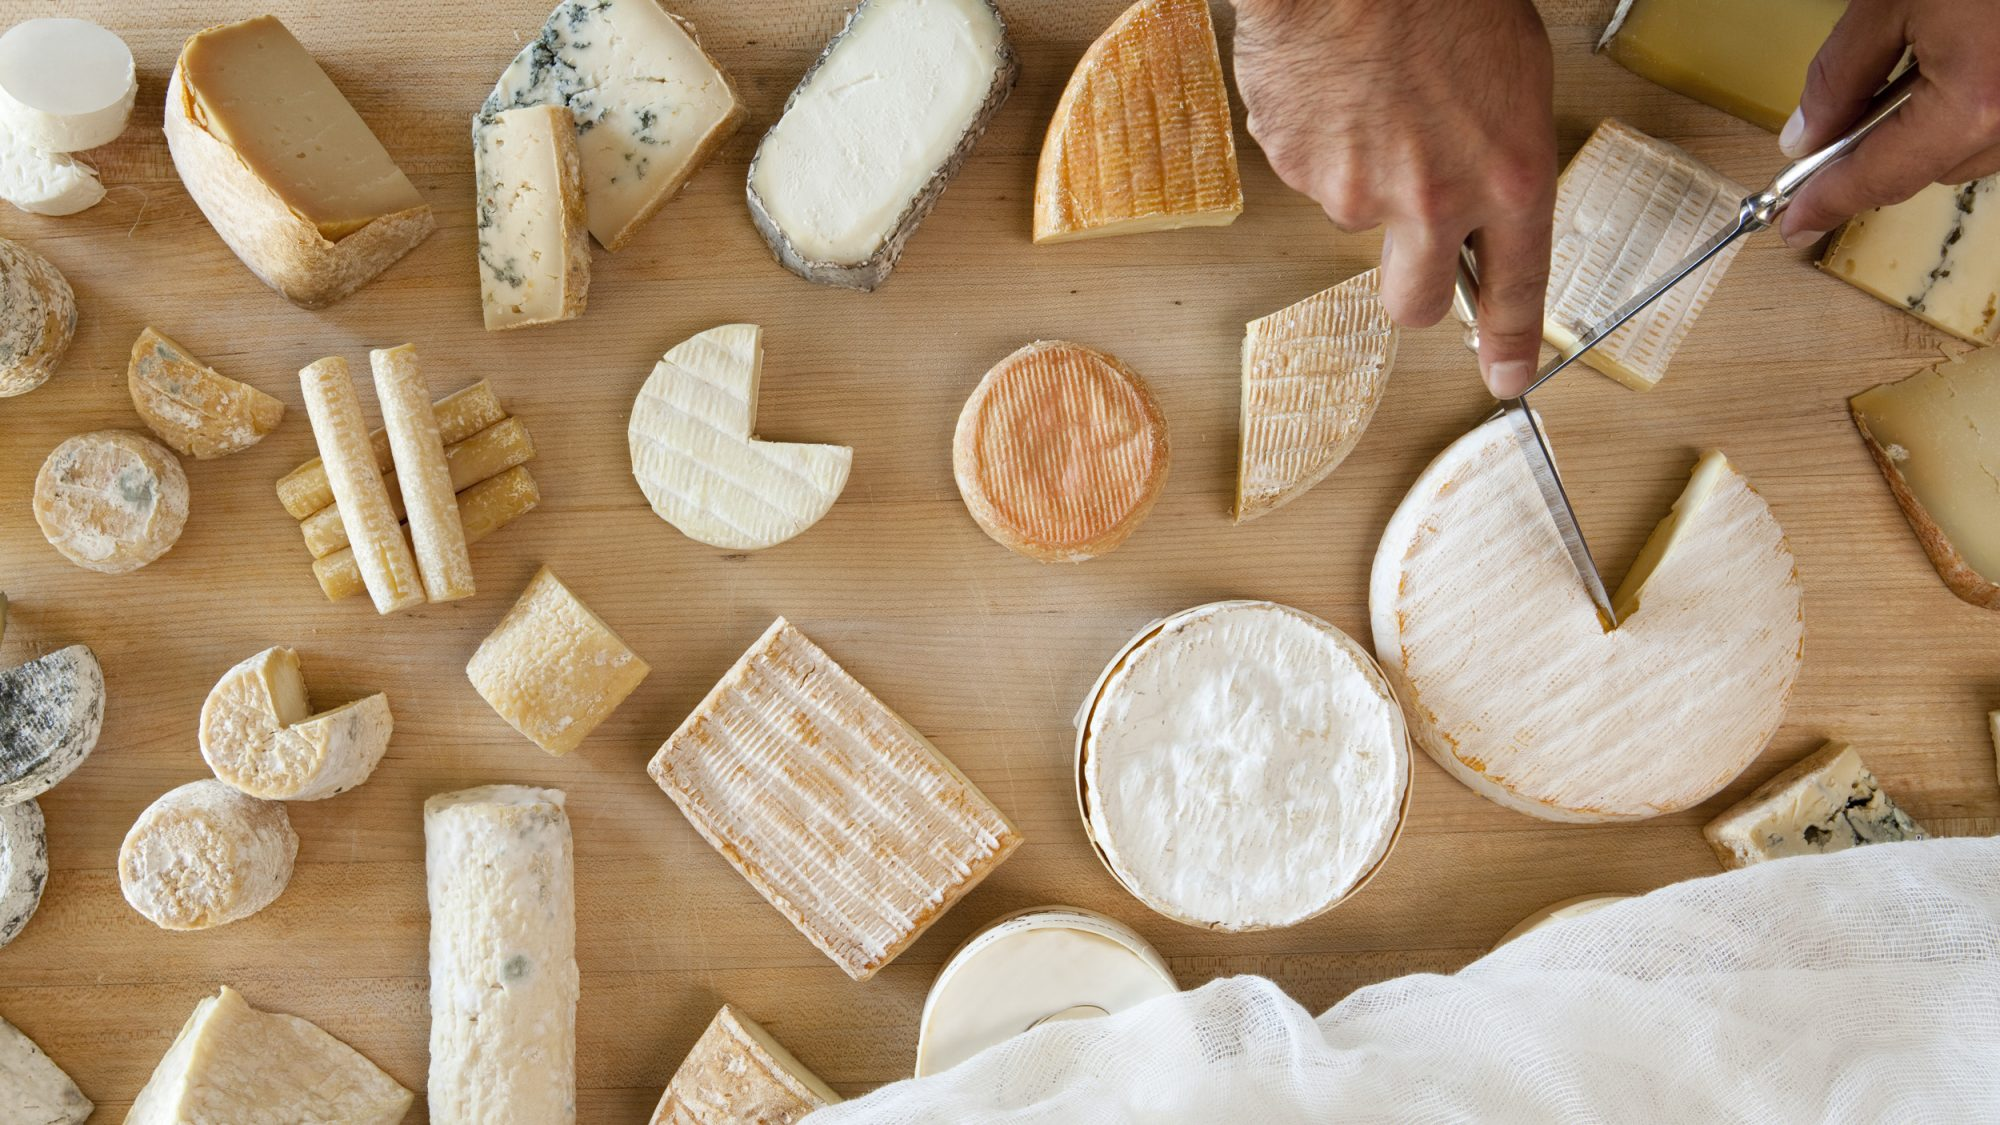 us-11-million-pounds-cheese-FT-blog0816.jpg